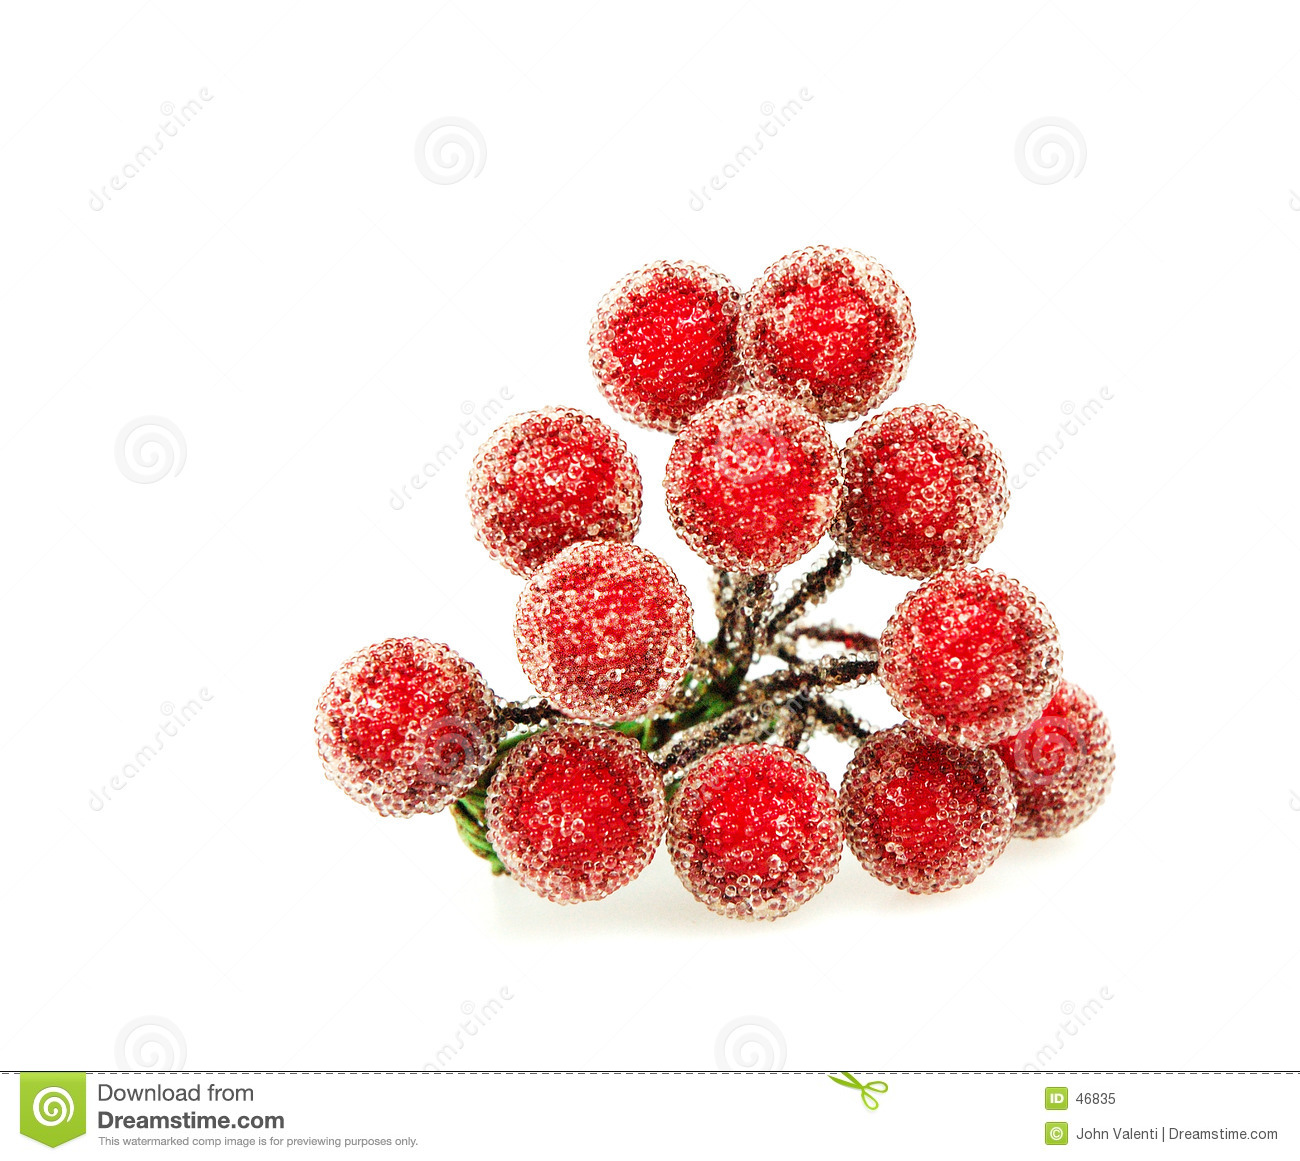 Rote Stechpalme-Beeren